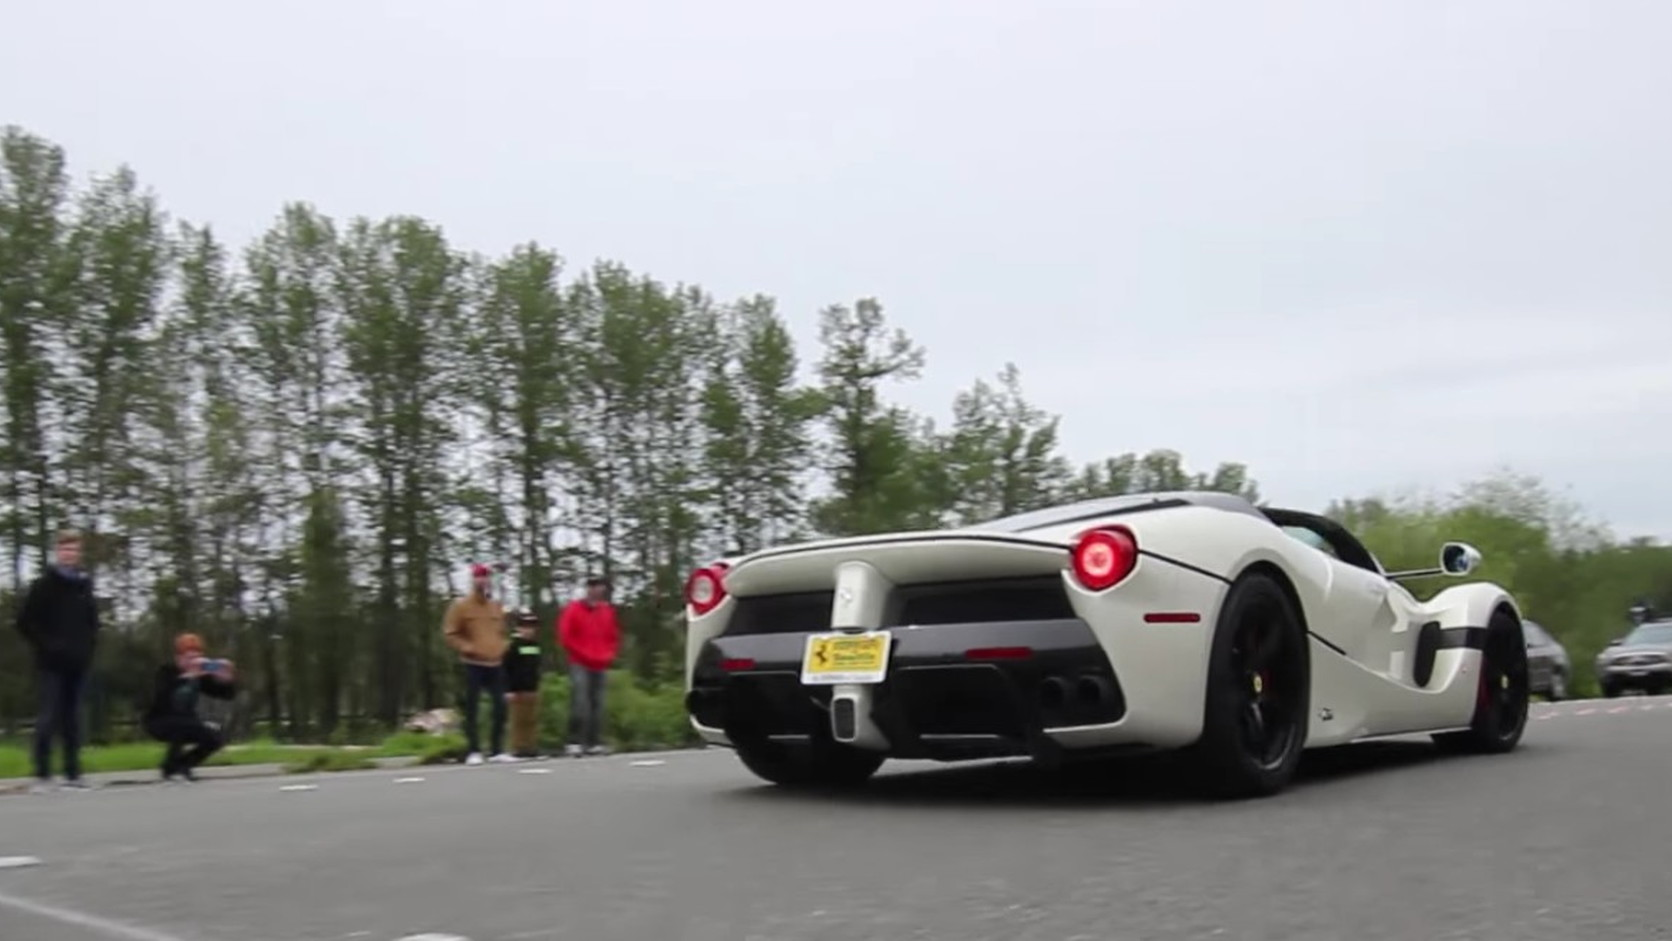 The first LaFerrari Aperta in the United States